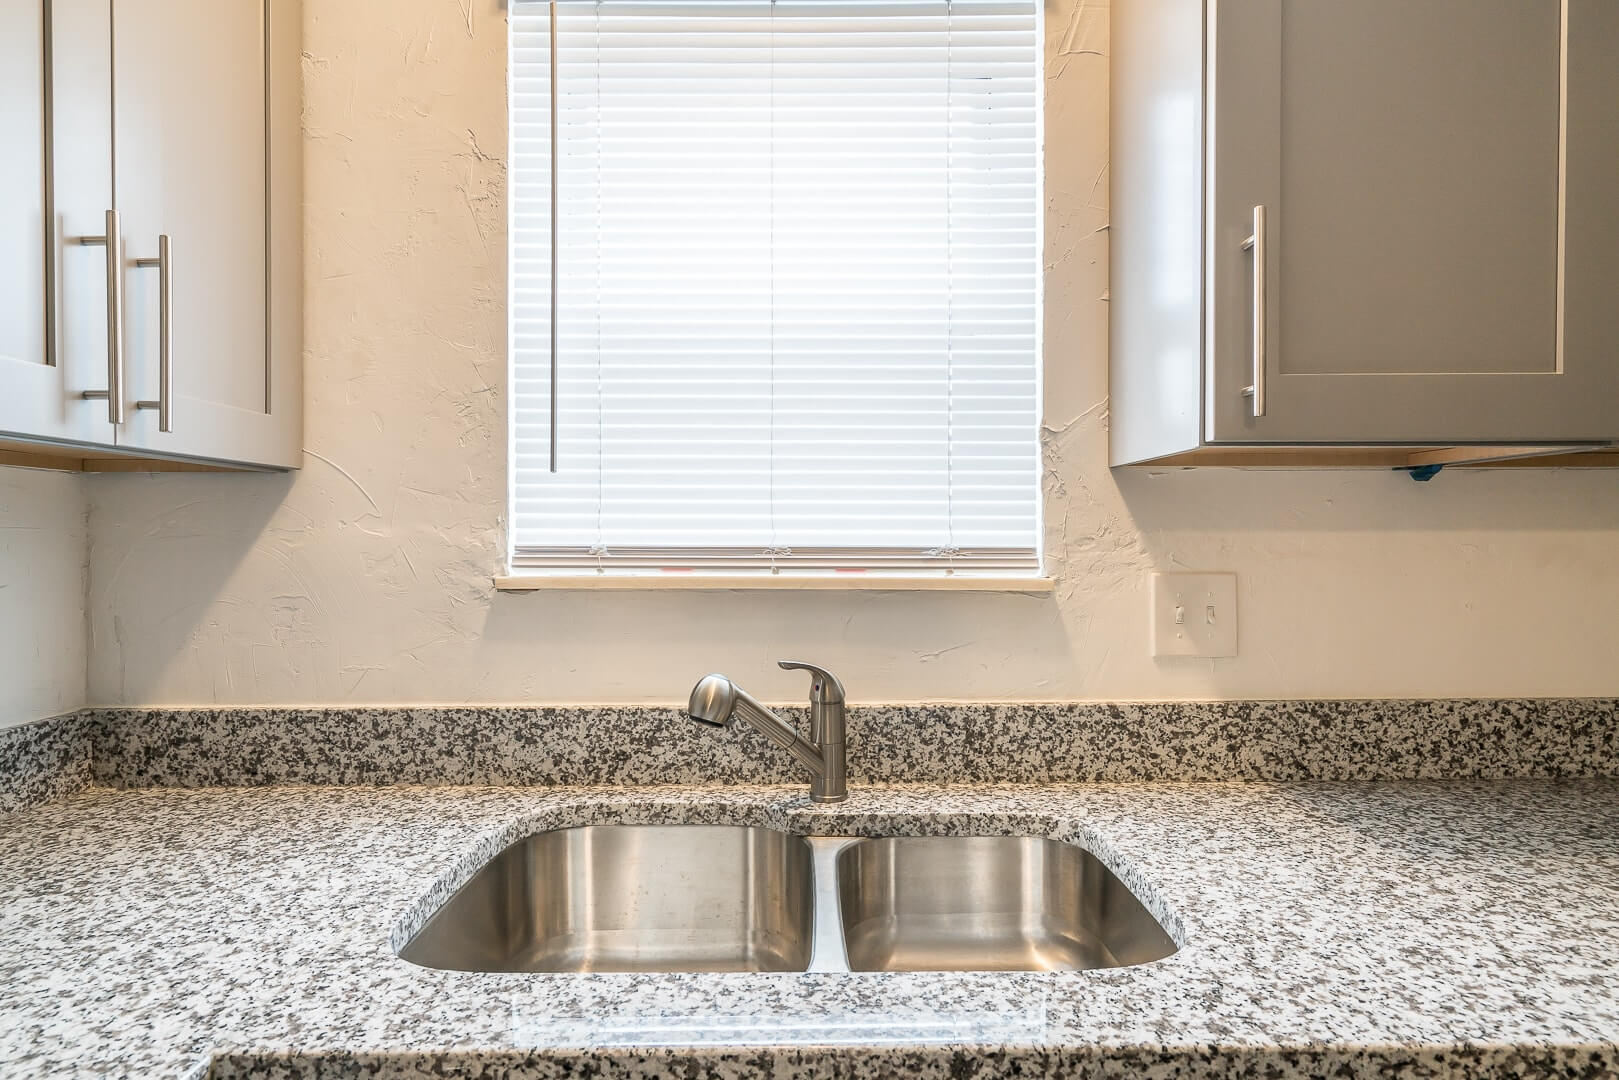 The Stanley - 2 Bed | 2 Bath | 1200 SF$915 Per MonthNo confirmed availability.